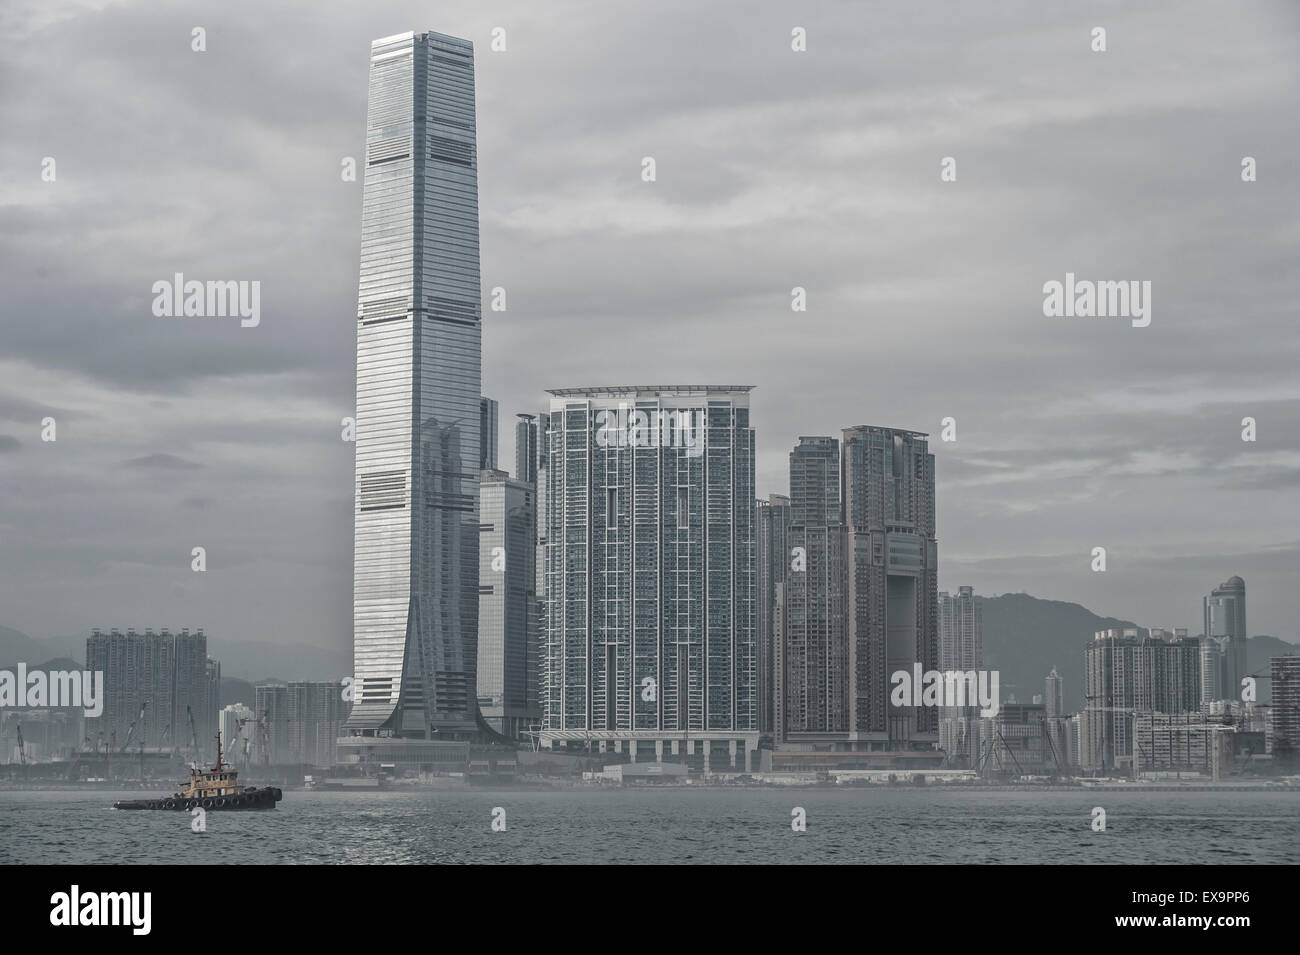 Low-contrast image of ICC tower, in Kowloon West, the highest building in Hong Kong. - Stock Image